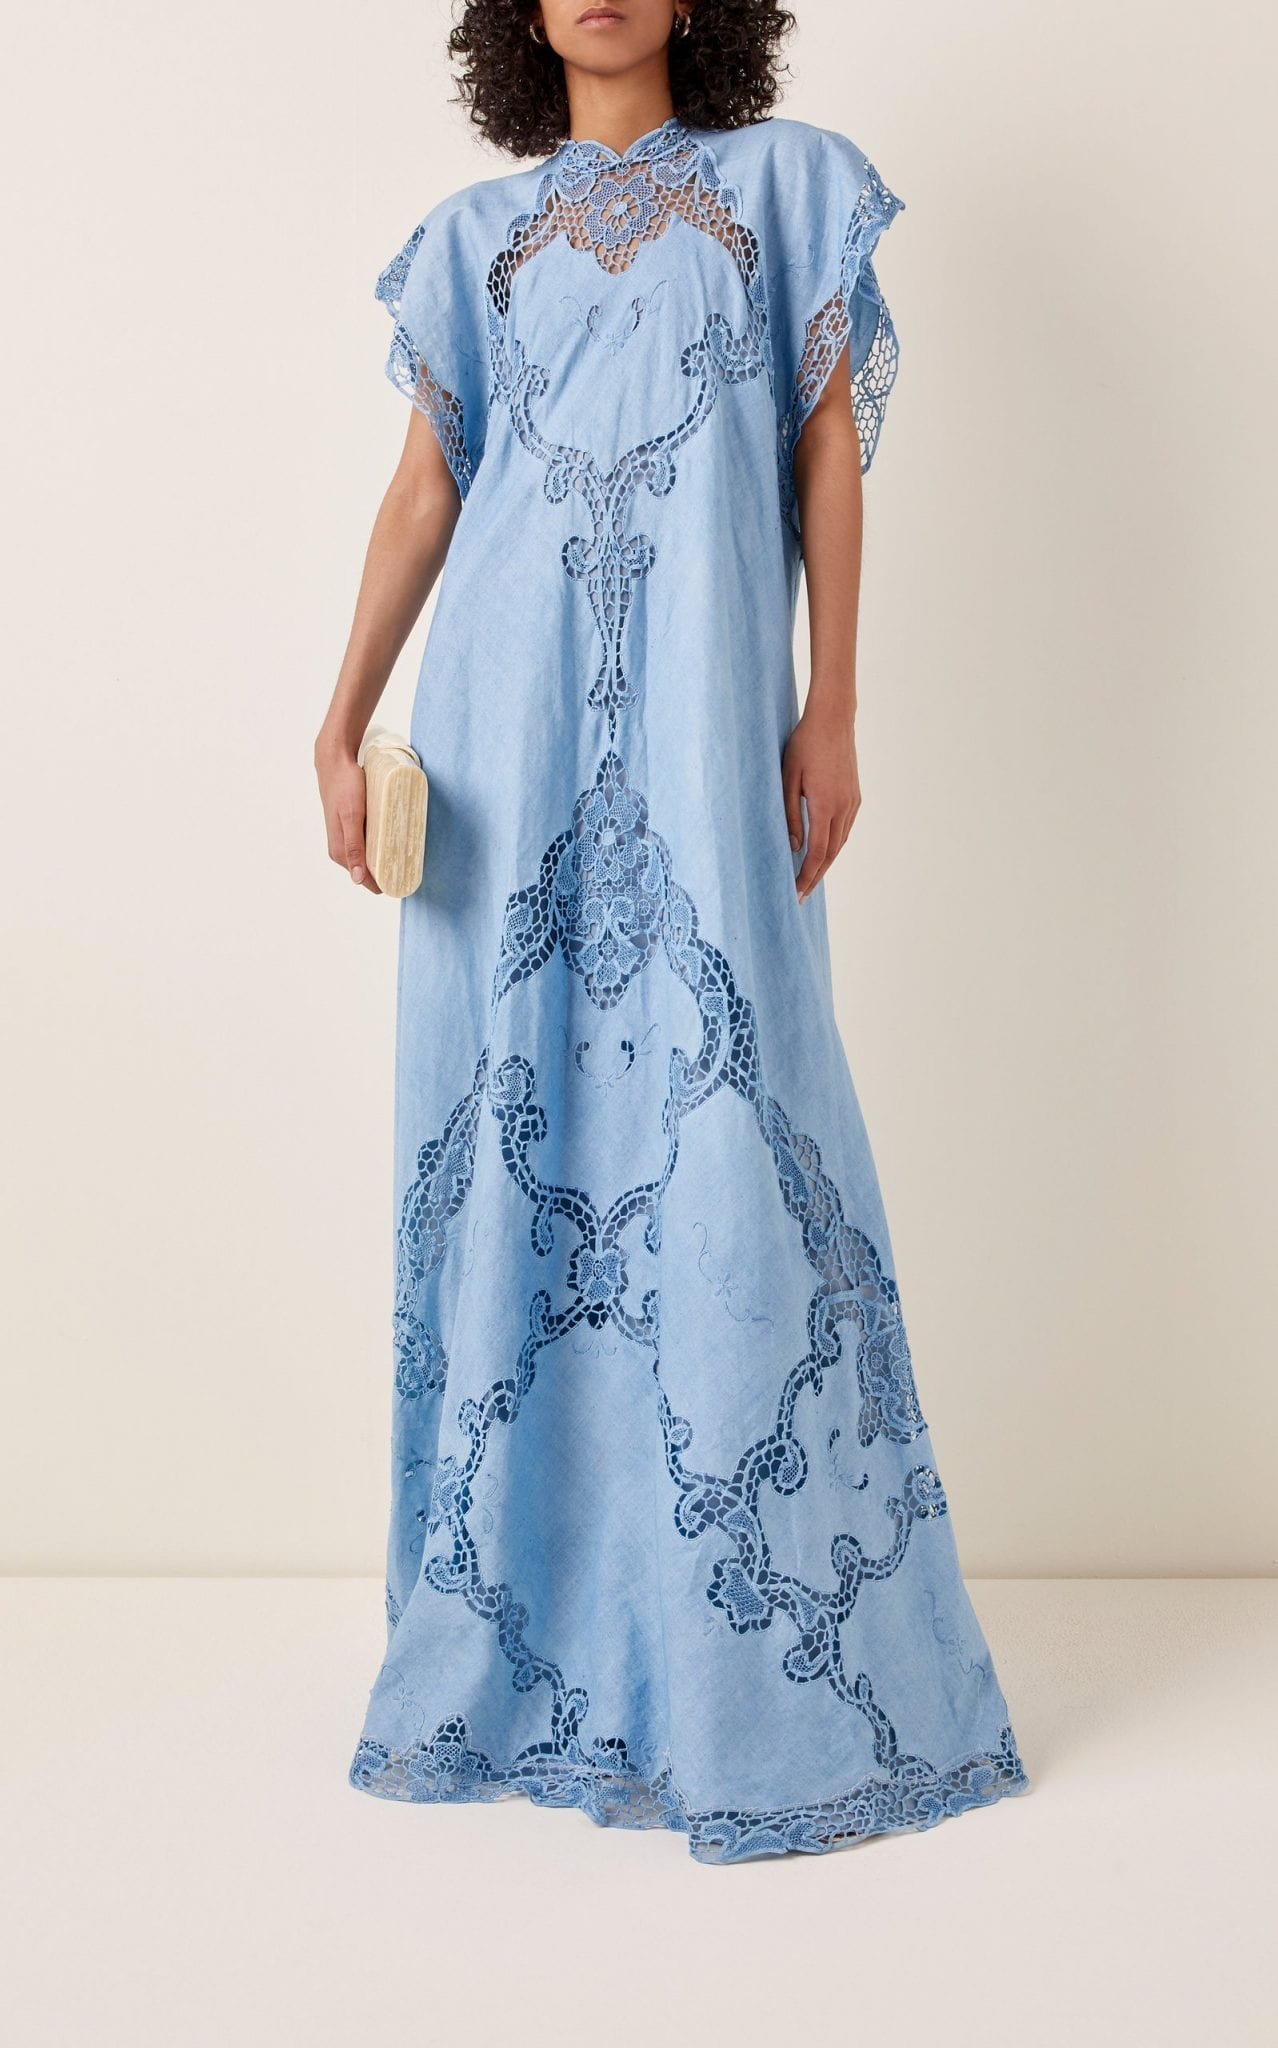 COSTARELLOS Alinna Lace-Detailed Linen-Cotton Caftan Dress